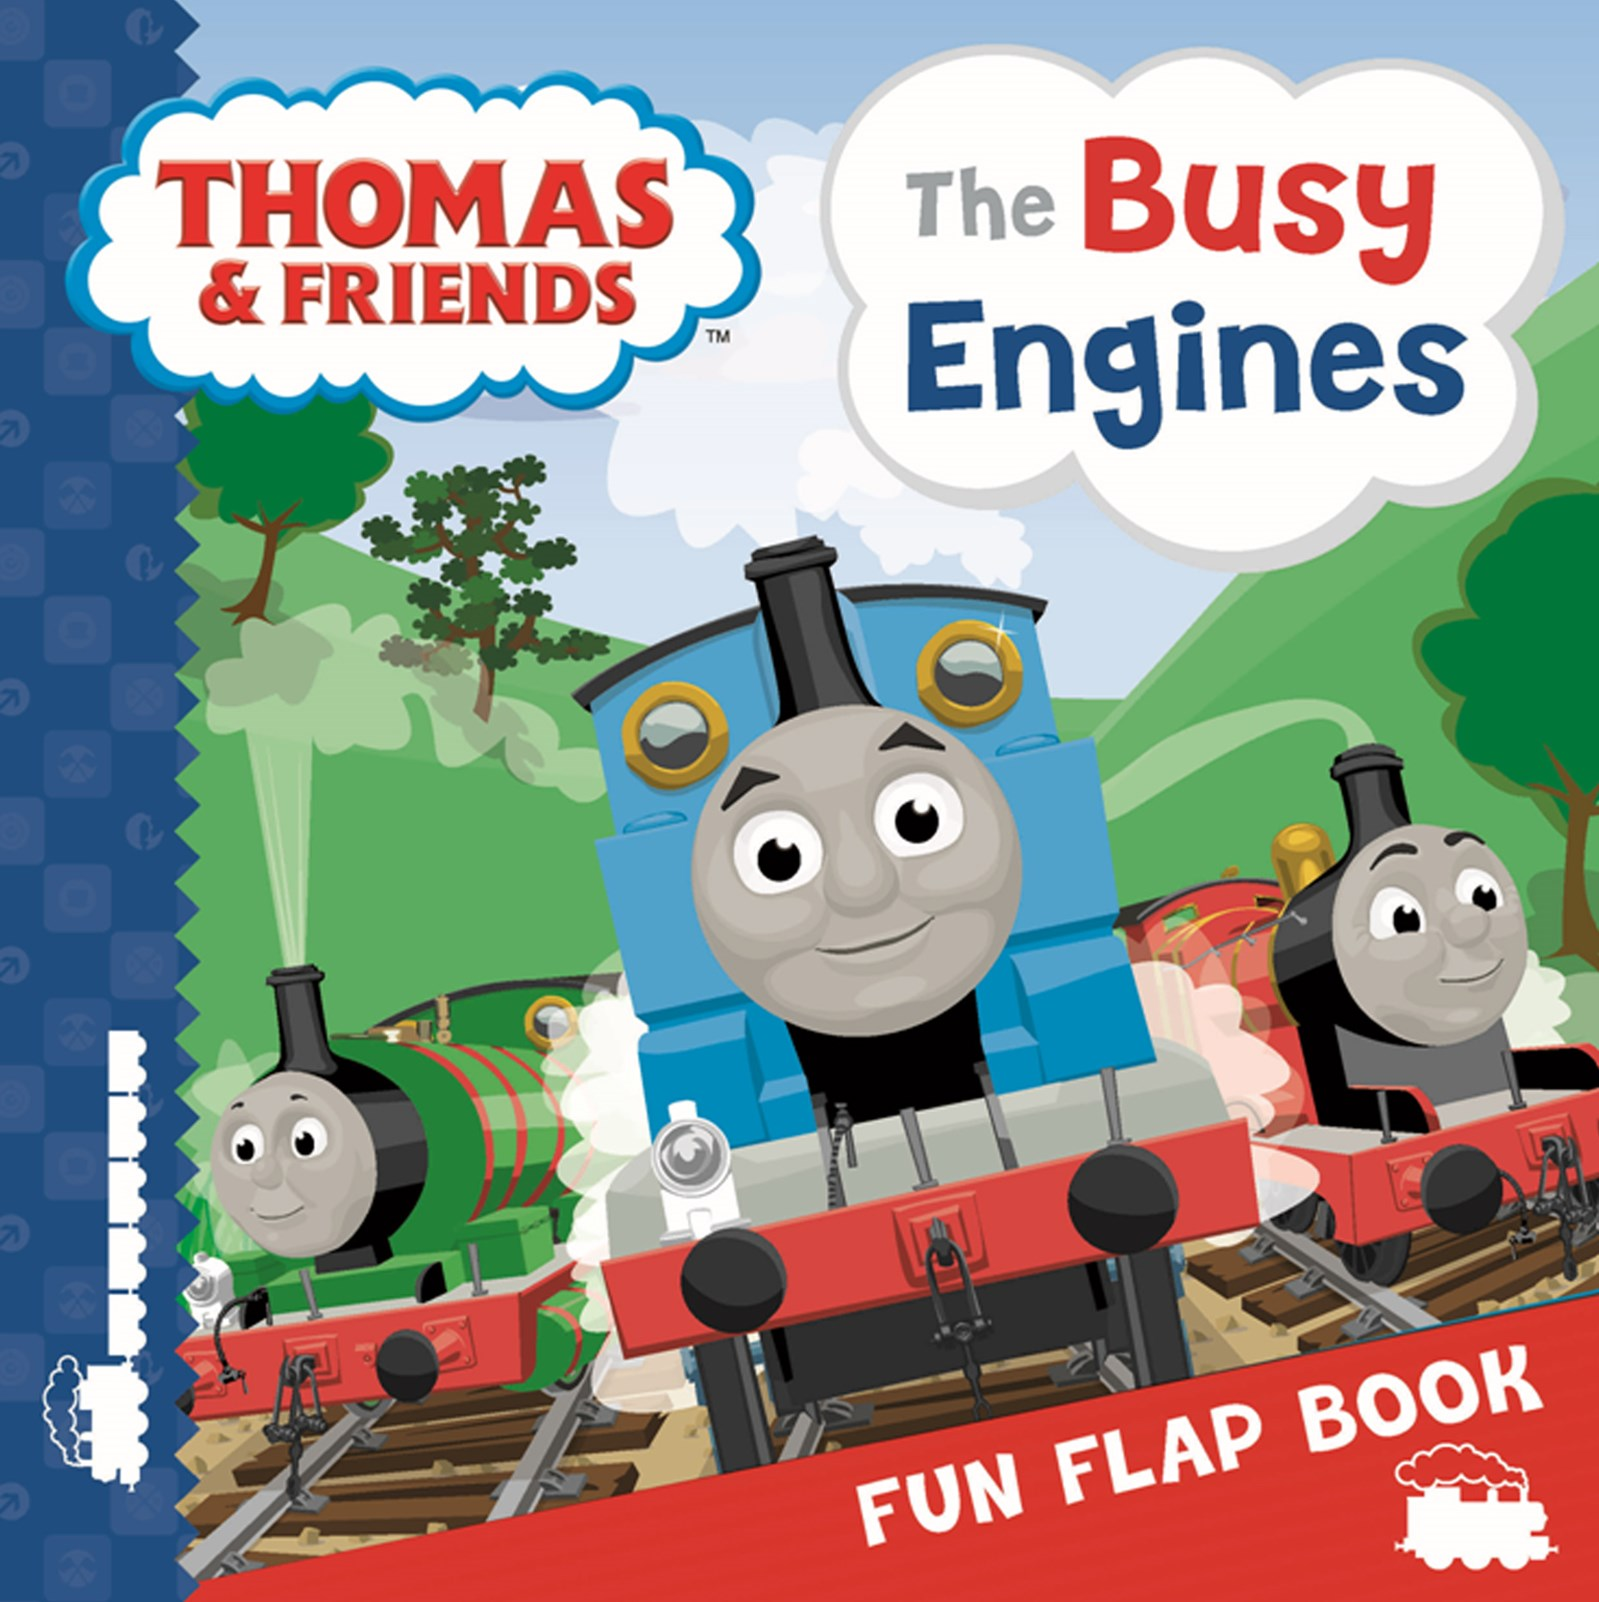 Thomas & Friends: The Busy Engines Lift-the-Flap Book